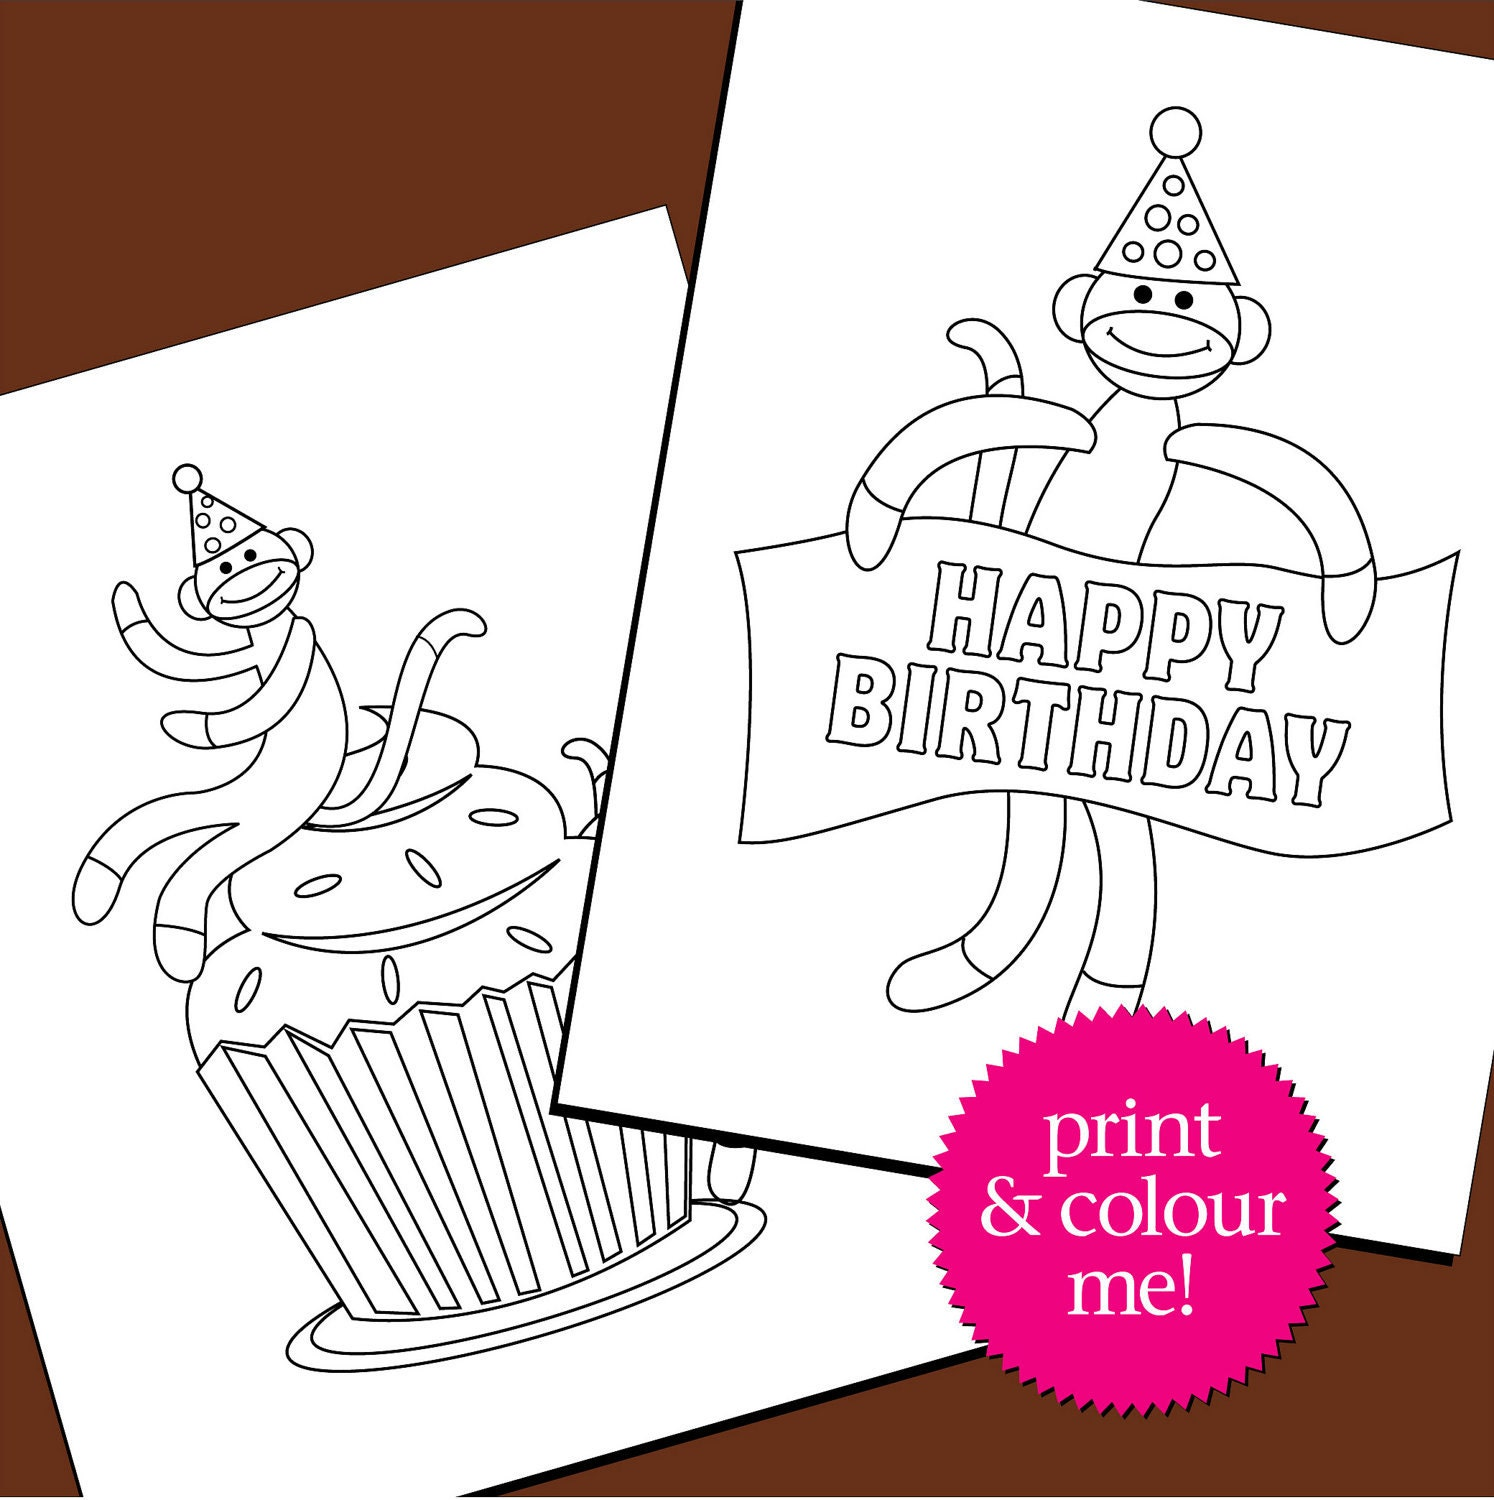 sock monkey coloring pages - colouring pages birthday sock monkey birthday coloring